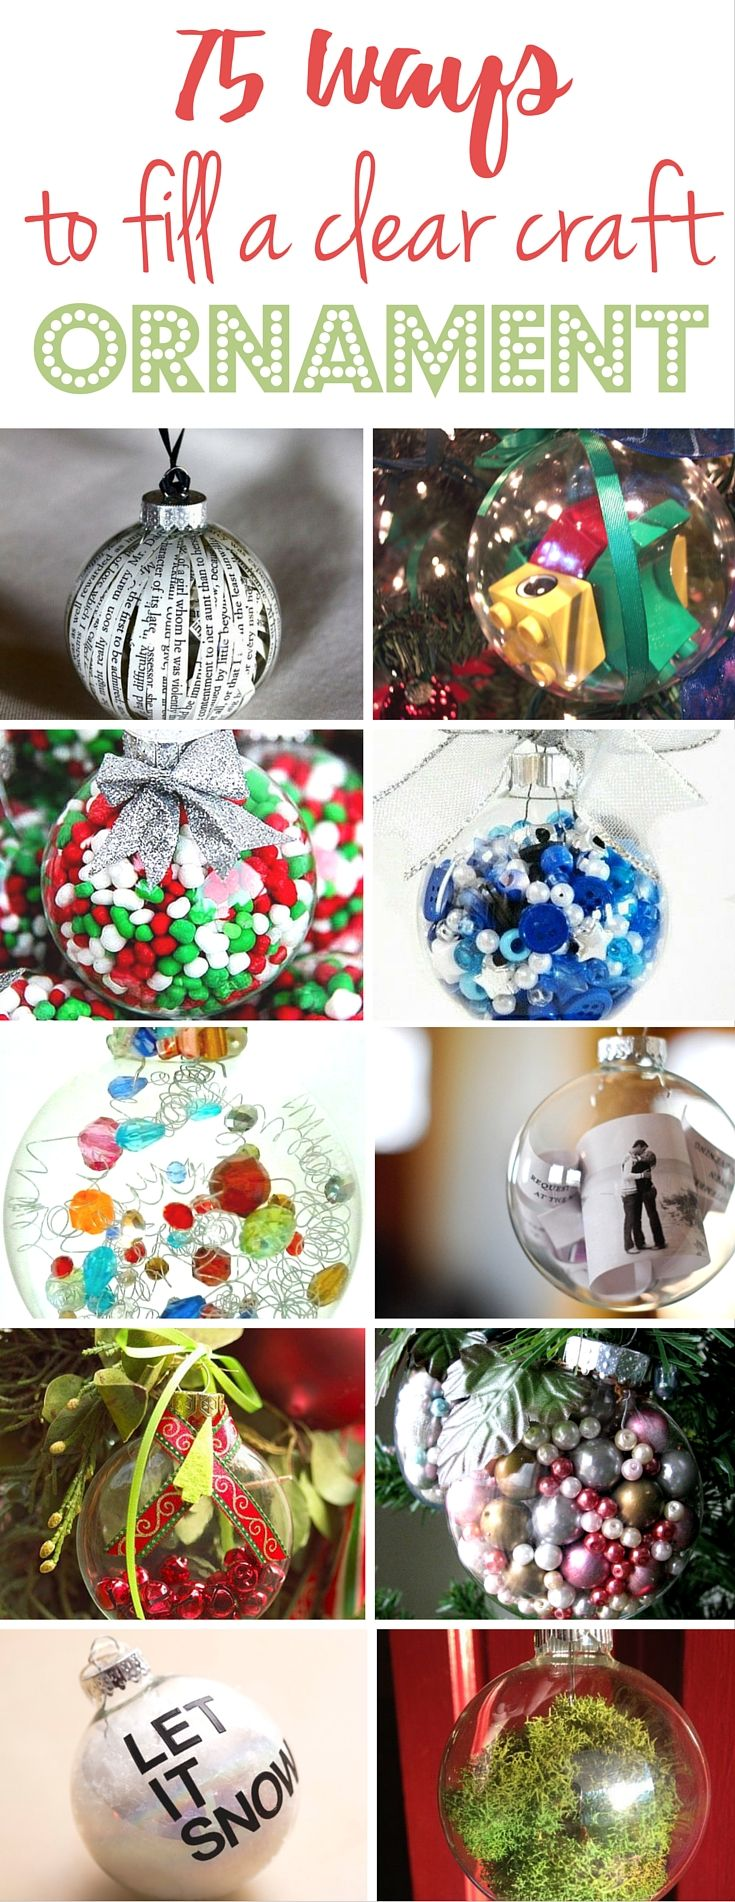 Diy christmas ornaments for newlyweds - 75 Ways To Fill A Clear Craft Ornament And Make A Homemade Christmas Ornament Christmas